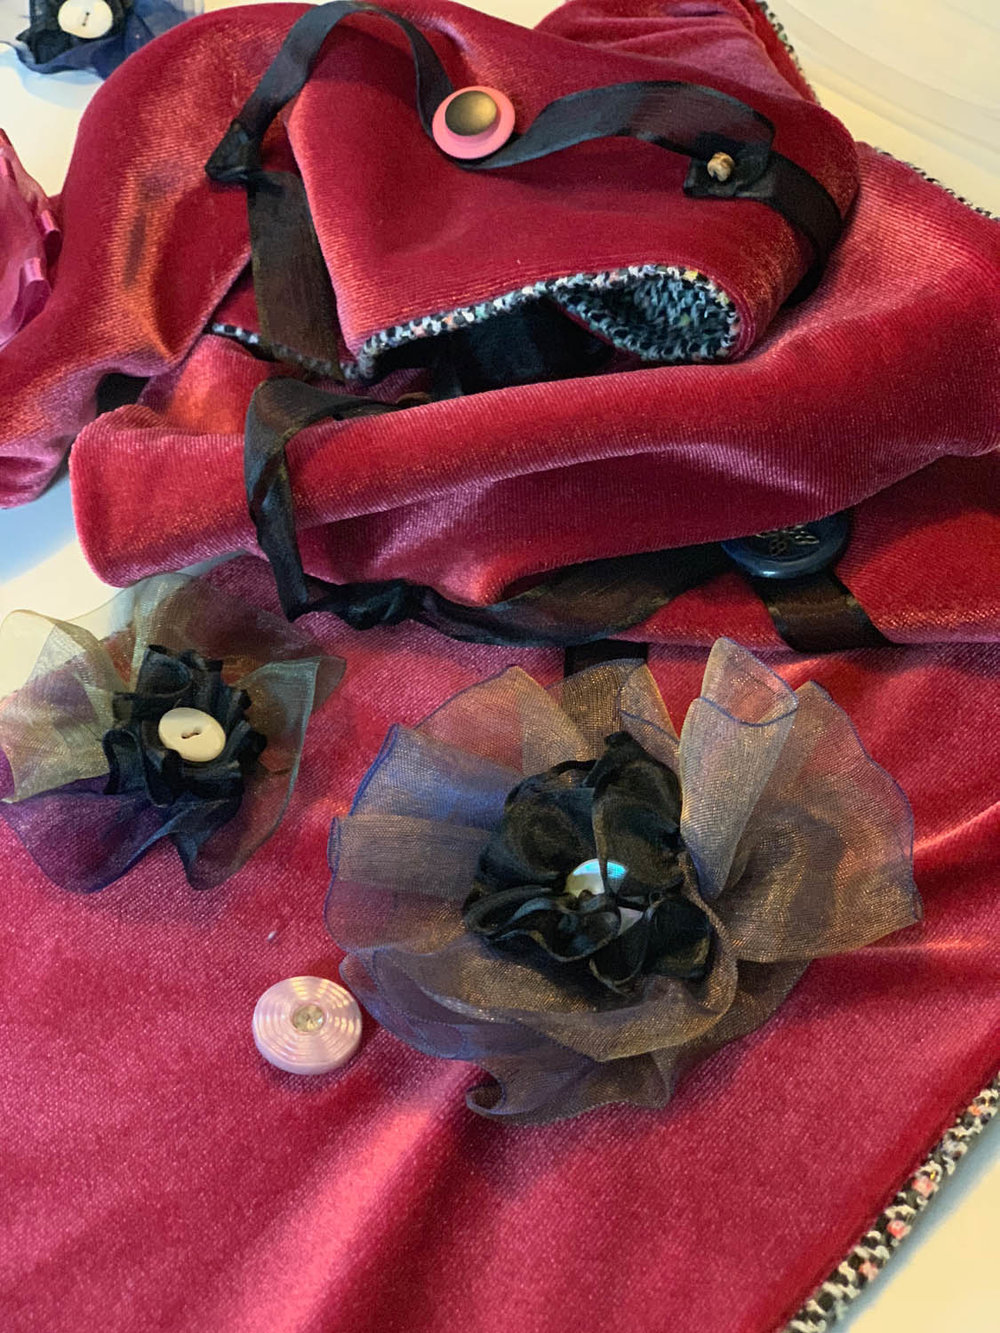 Silk ribbon flowers with button embellishments stitched to red velvet scarf